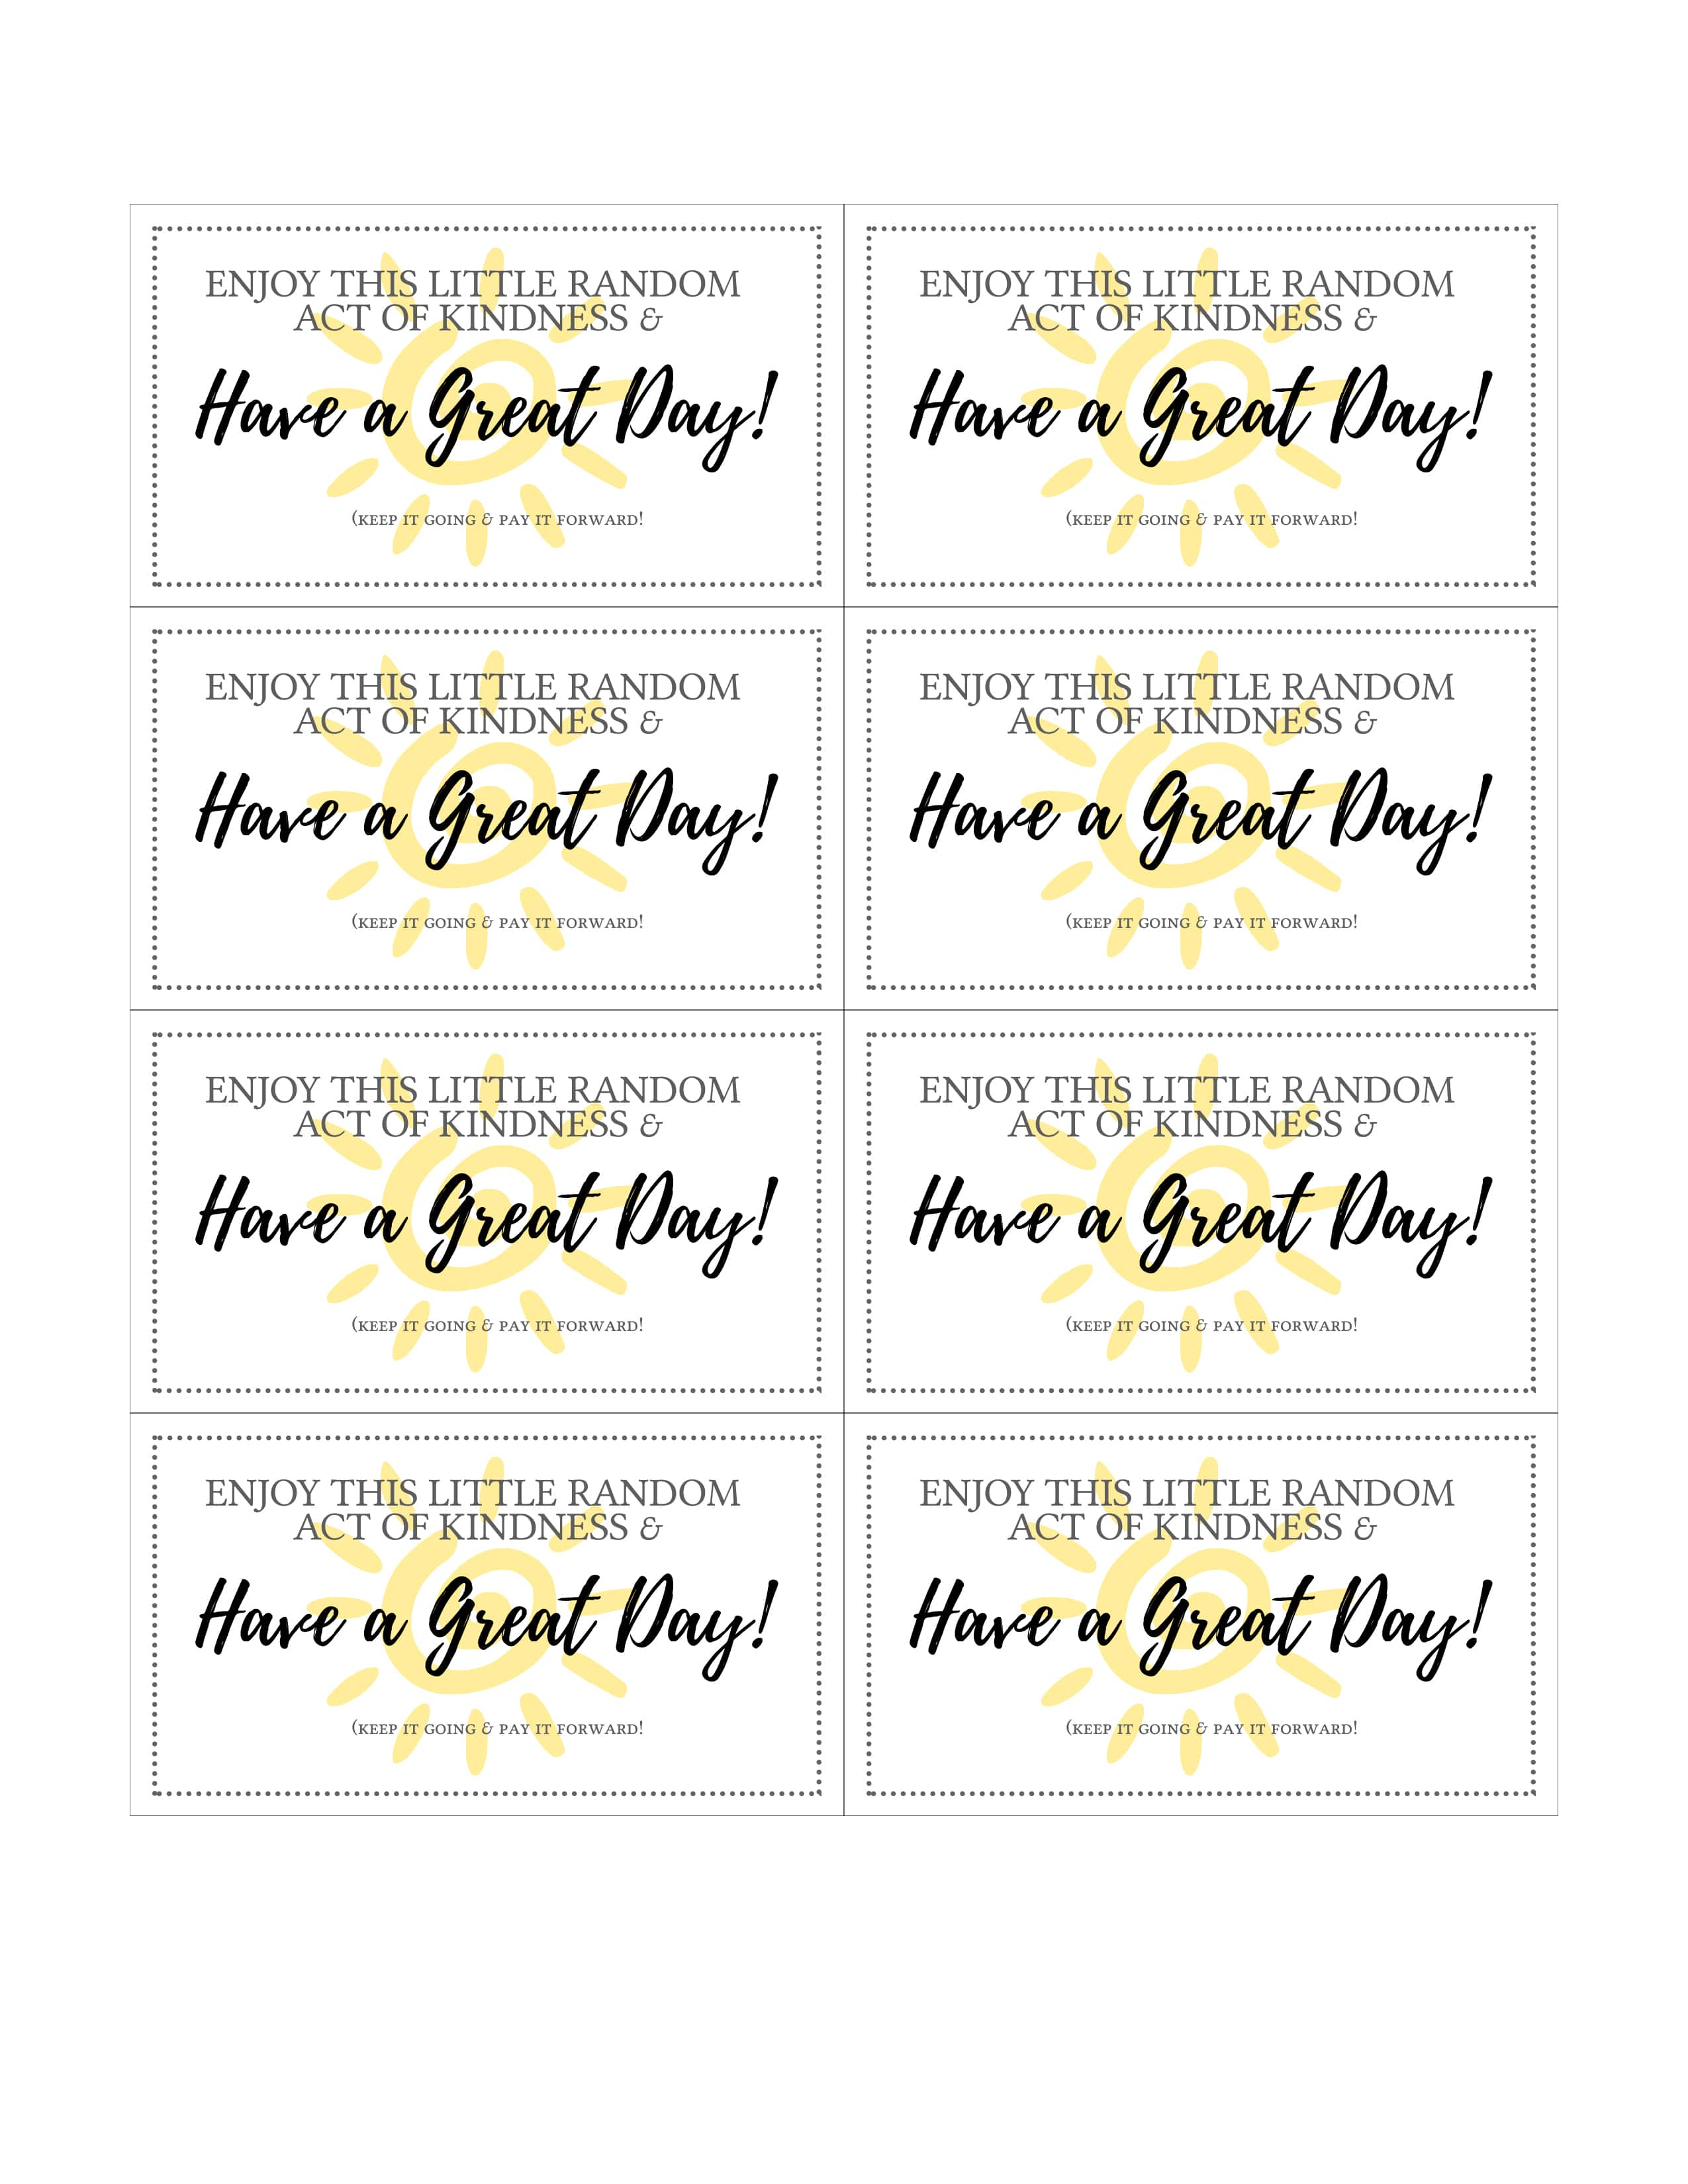 It's just a picture of Unforgettable Kindness Cards Printable